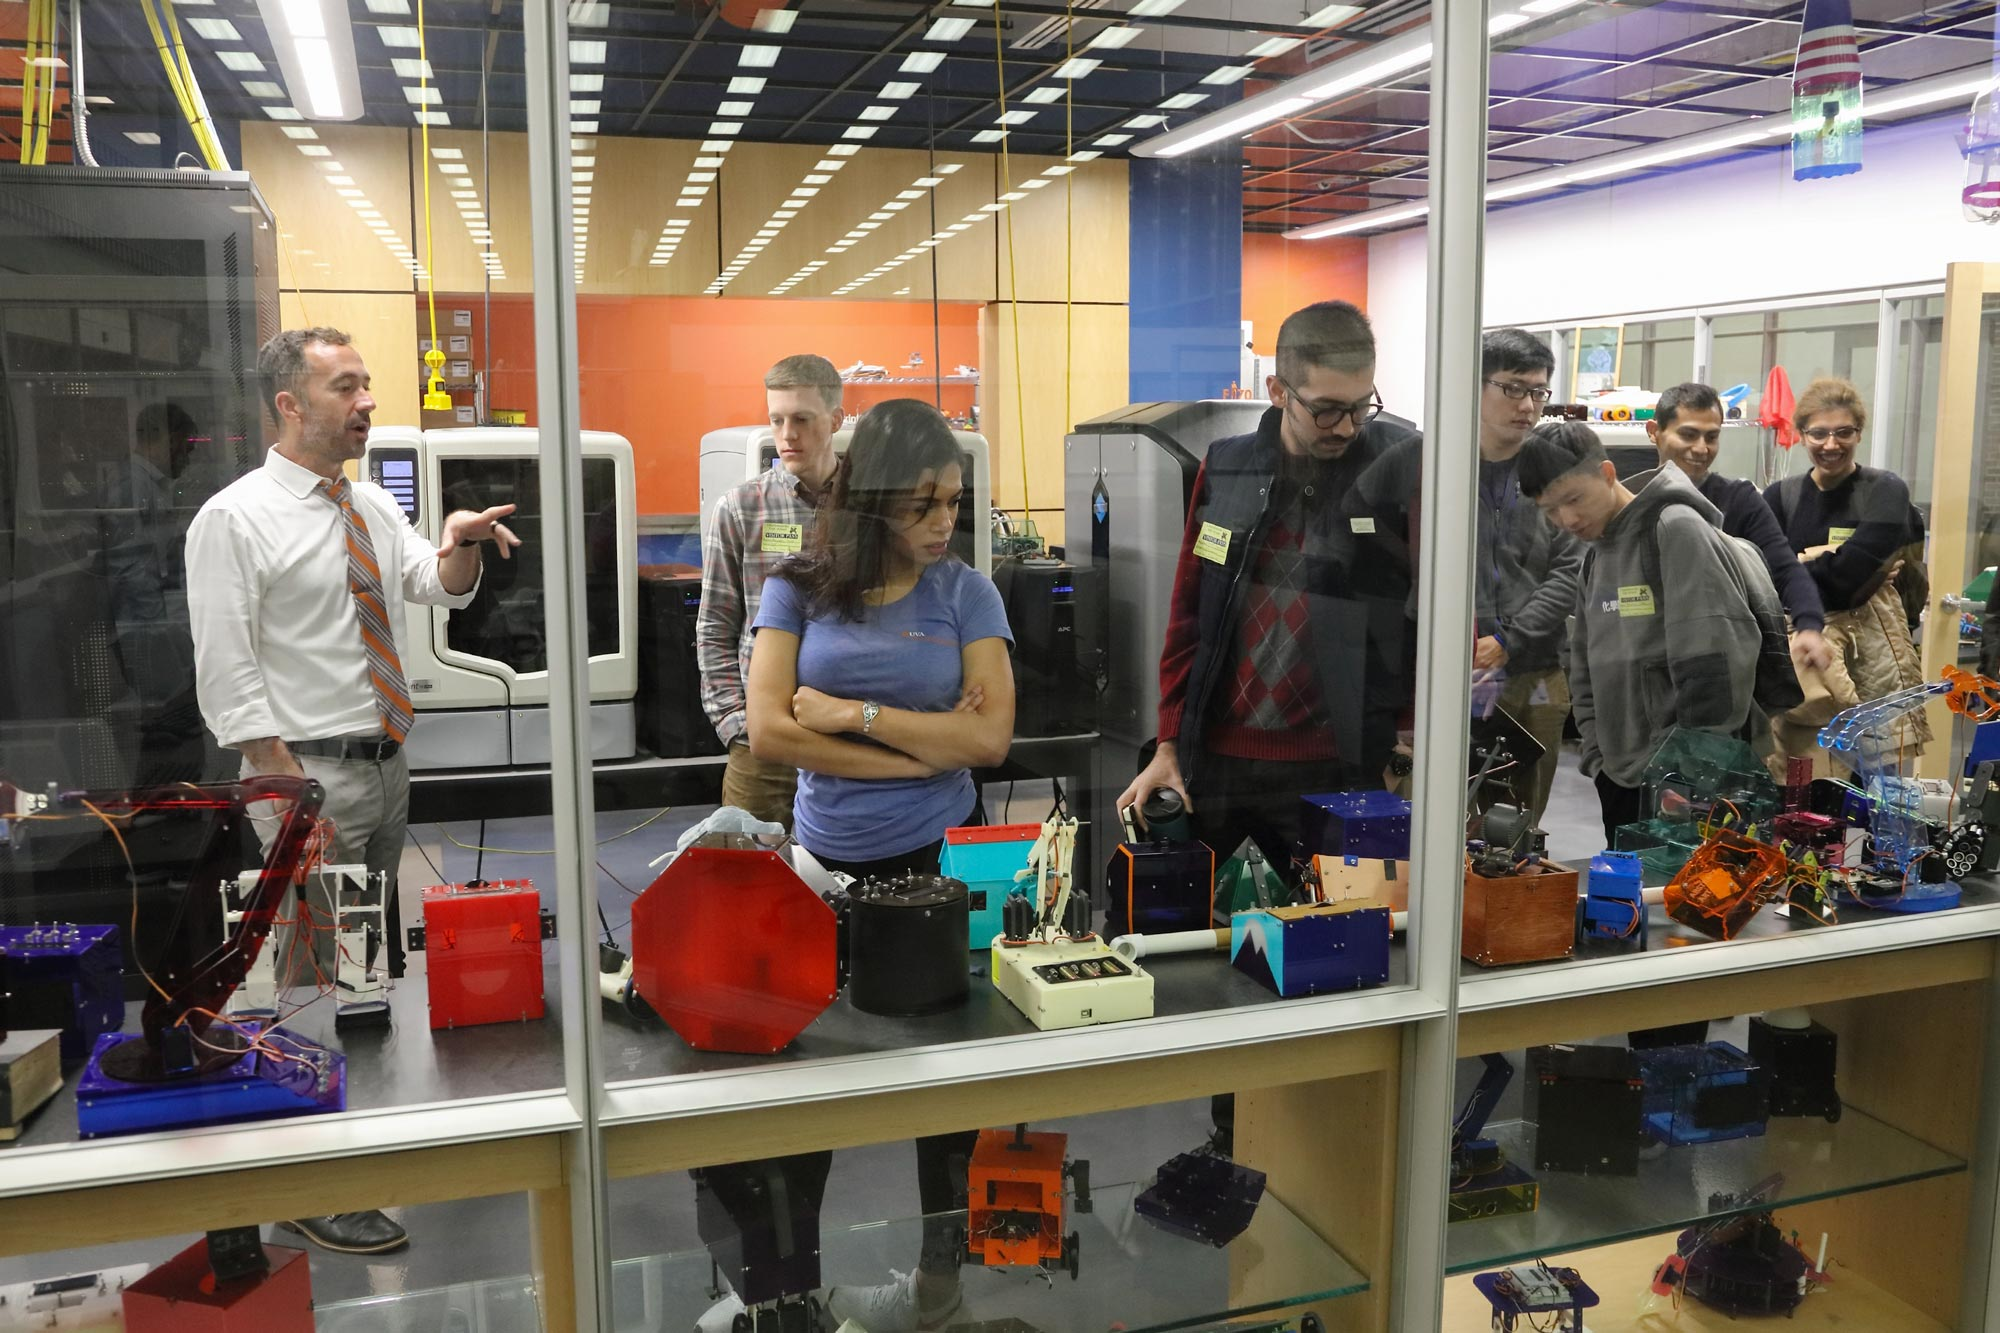 Matthew Shields, left, gives graduate engineering students (from left) Benjamin Bowes, Natalie Lerma, Arash Tavakoli, Ruijie Zhu, Wenqiang Chen, Luis Lopez Ruiz and Sonia Baee a tour of Charlottesville High's Sigma Lab.